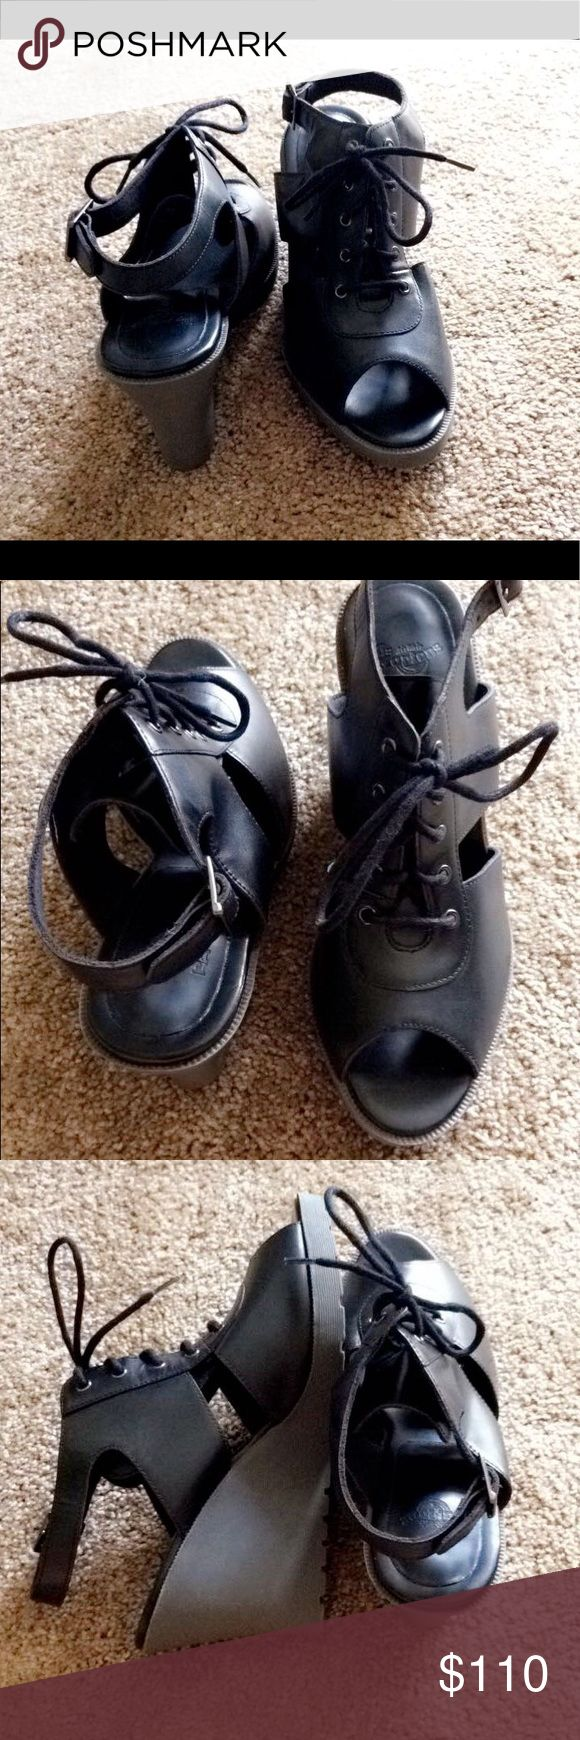 NWOT Dr.Martens Laina Lace Sandal Size US 7 EU 38 NWOT Dr. Martens Black Laina Gemine Leather Lace up Sandal. 3 1/4 Heel. Perfect for a concert or a long maxi dress. These are super cute and no longer made or sold! These wedges are really comfy and can be worn for a long day. They really make a nice statement without overwhelming an outfit.  Tags: Laina Doc Martins Martens Dr.Marten boots heels wedges cute goth edgy punk combat boots Michael kors jimmy choo  dolce goth hardcore Dr. Martens…